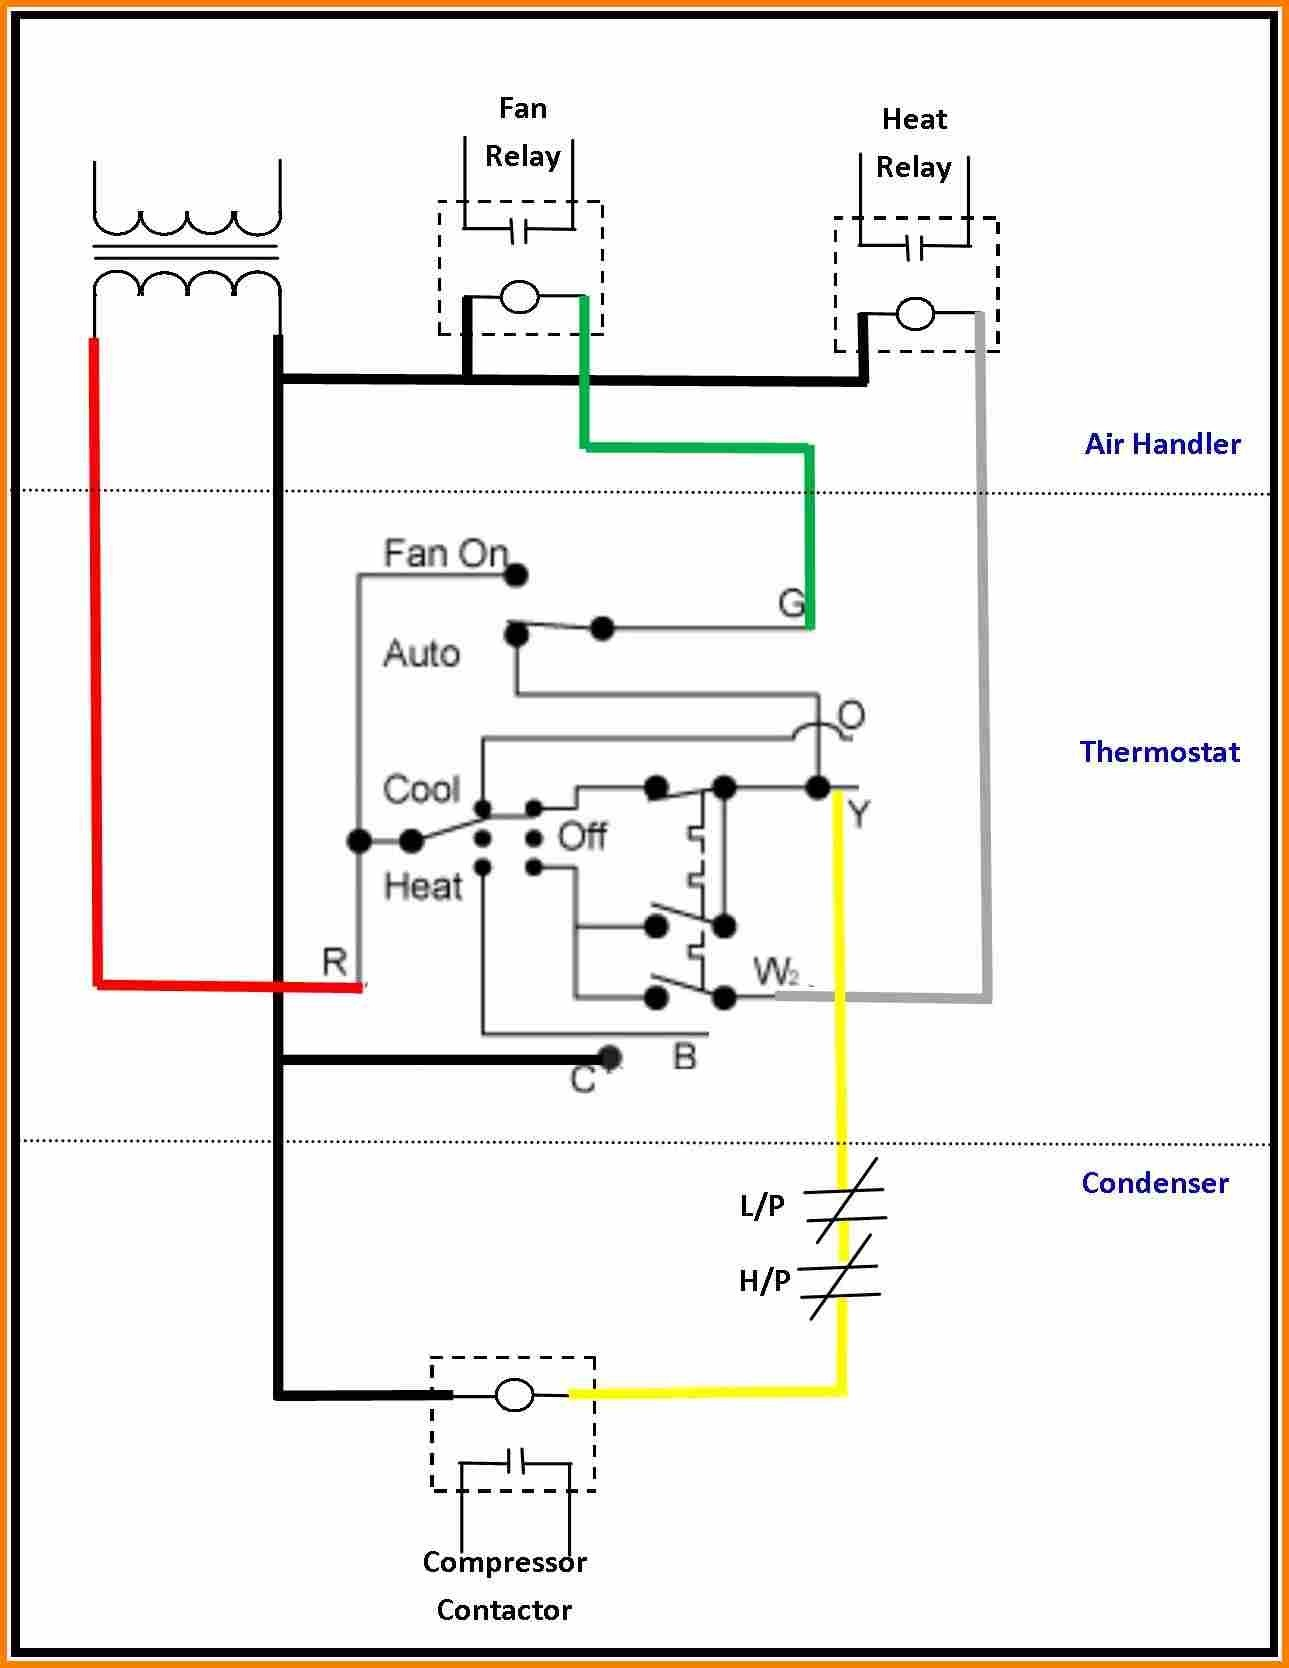 Lux Programmable Thermostat Wiring Diagram - Wiring Solutions